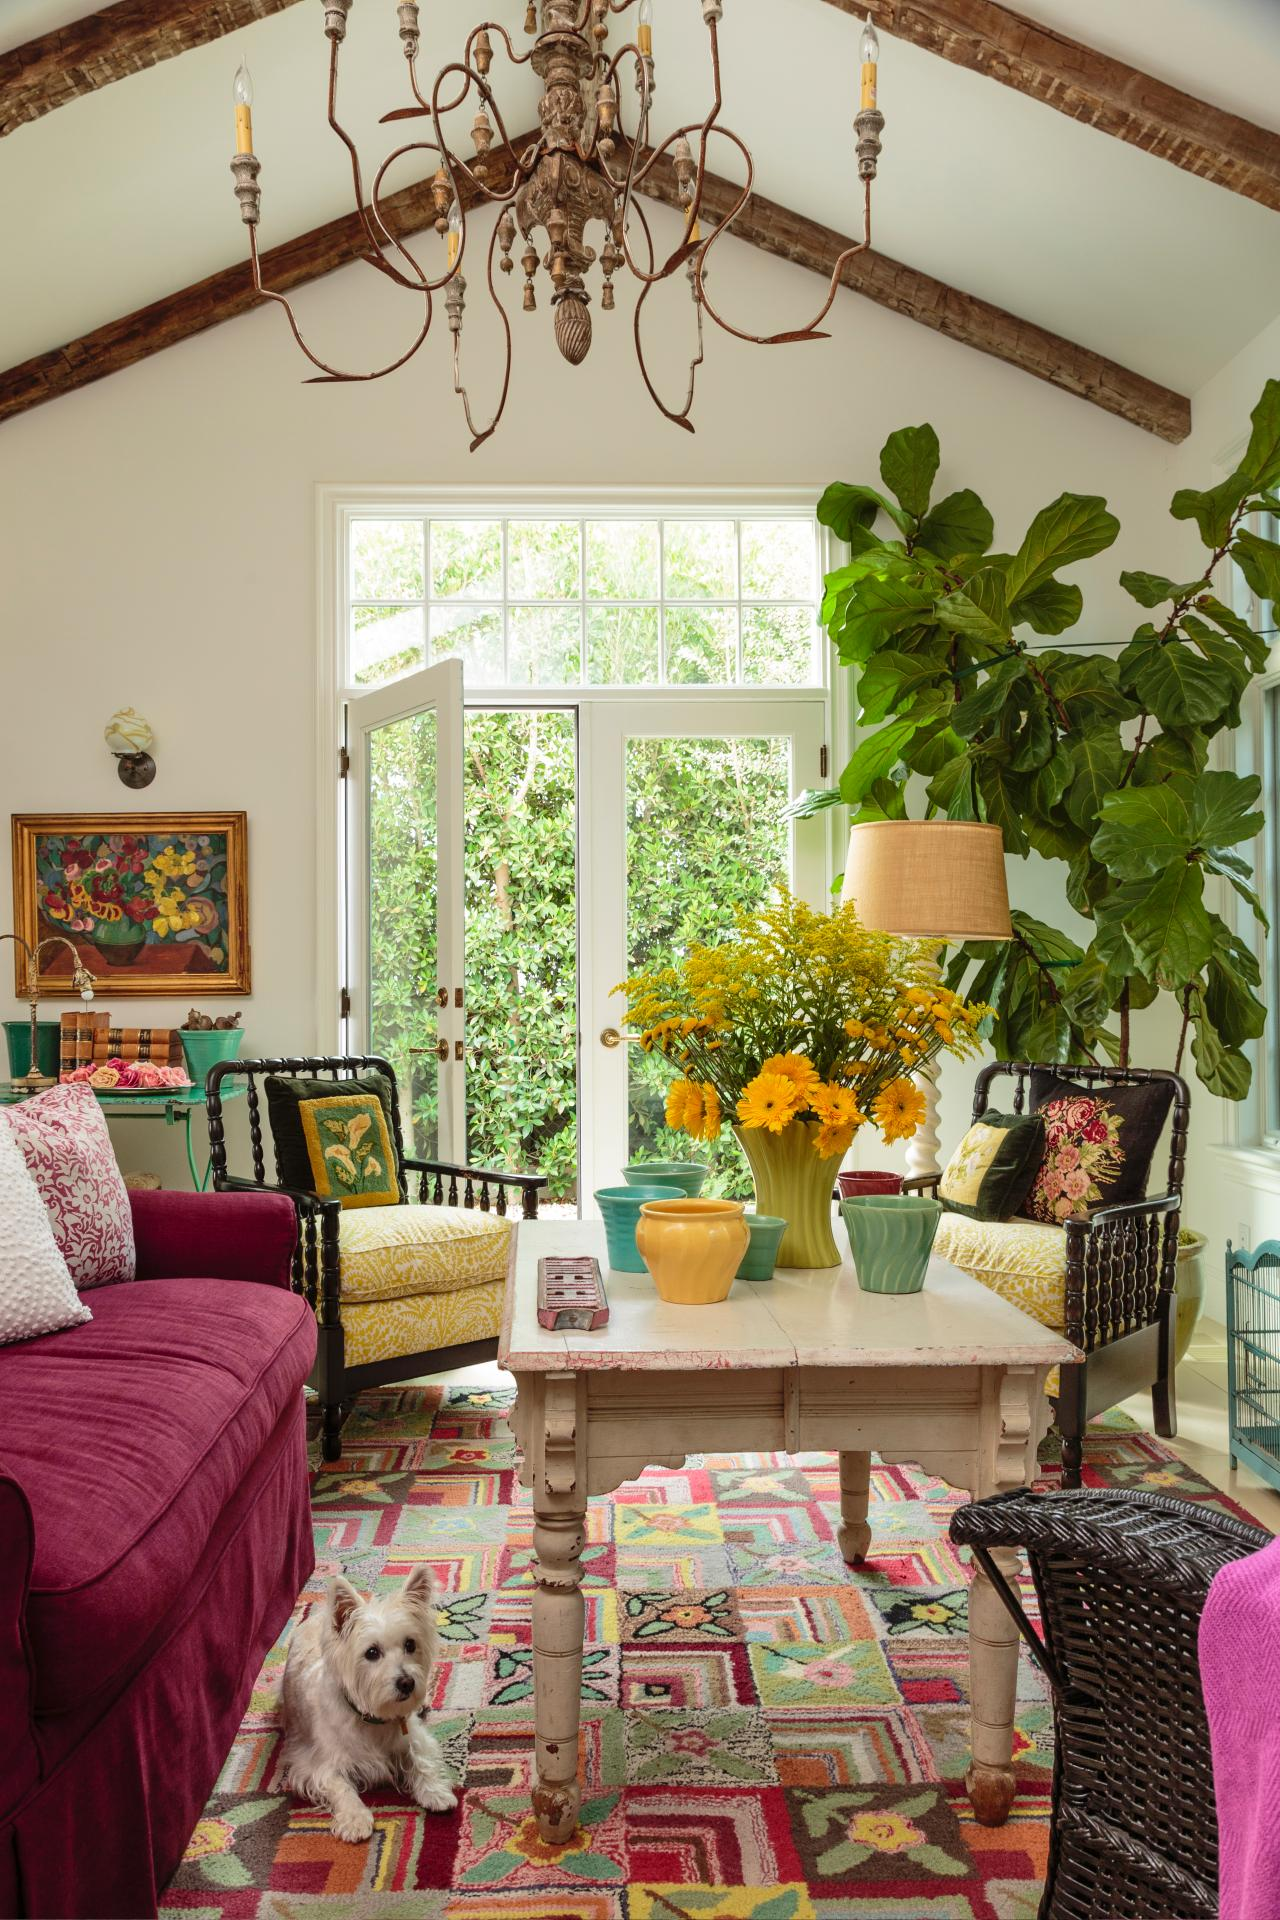 Small Living Rooms Decorating Hgtv: Take A Peek Inside This Colorful California Cottage